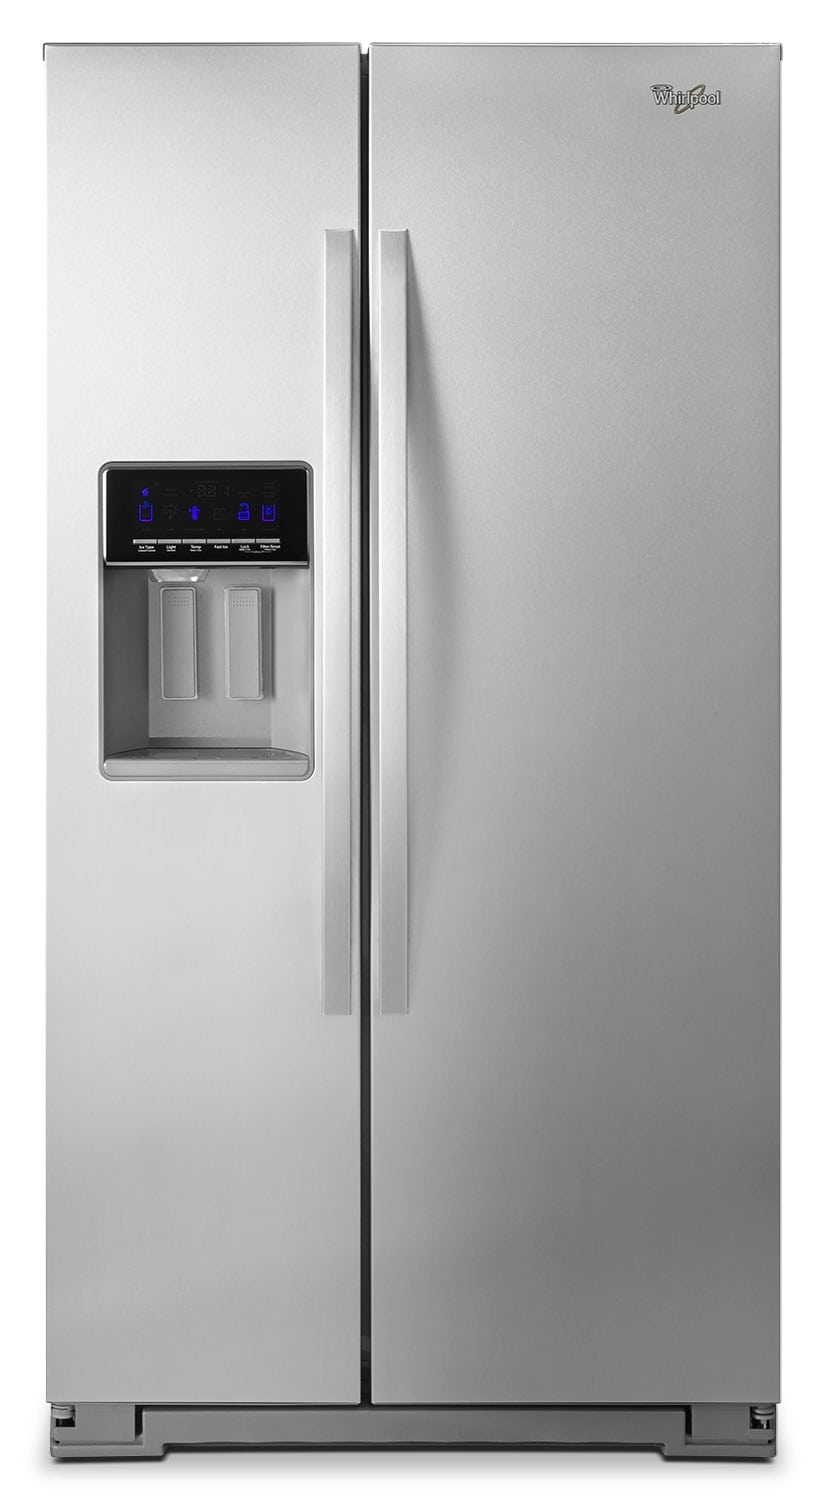 Refrigerators and Freezers - Whirlpool 26 Cu. Ft. Side-by-Side Refrigerator – Stainless Steel